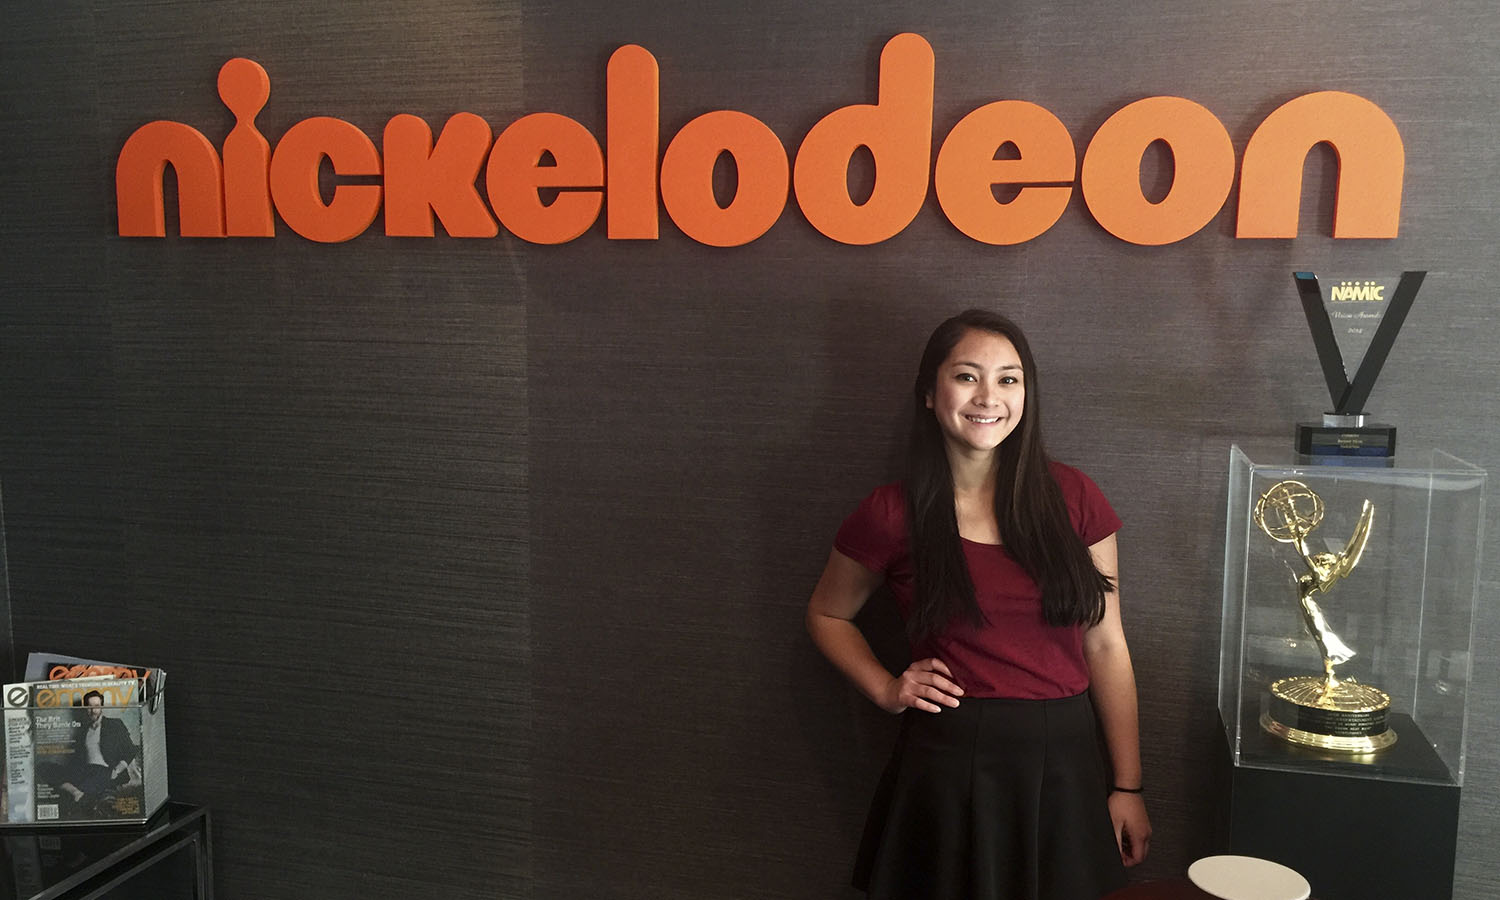 Gail Quintos '17 is working in the casting department of Nickelodeon as part of her internship with the Emmy Foundation in Los Angeles, Calif. this summer.